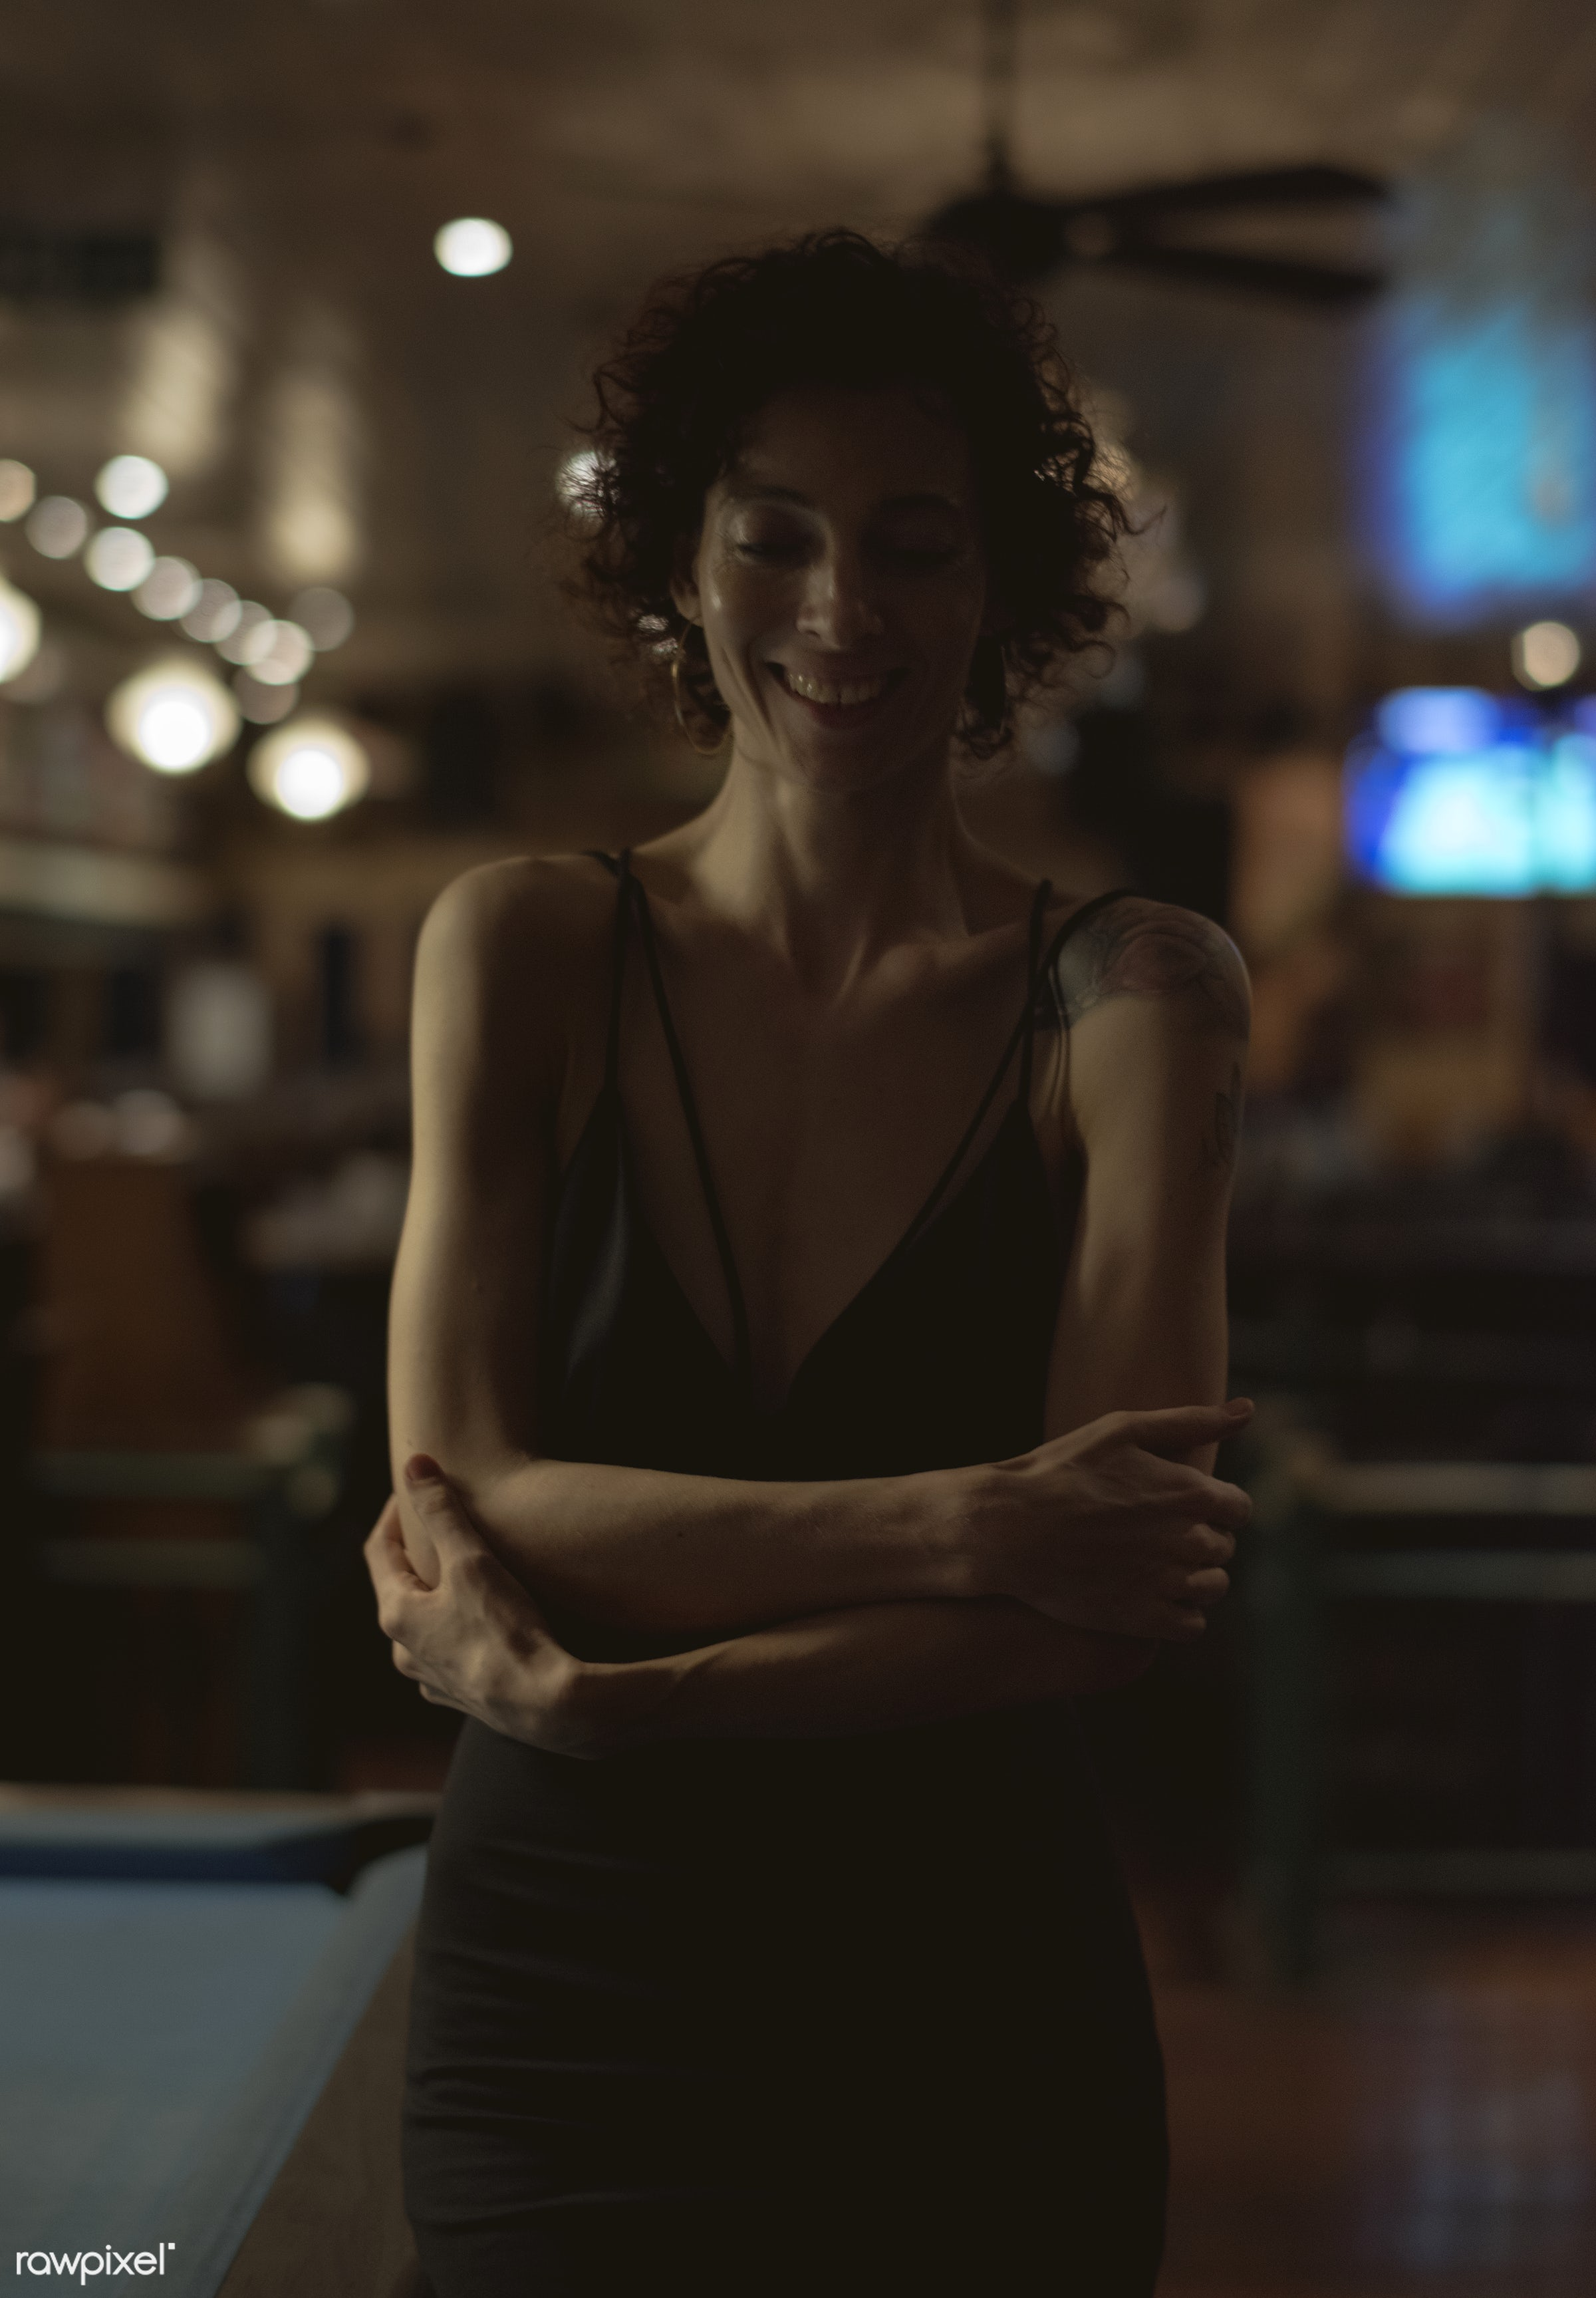 Portrait of a lone woman at a bar - 8 ball, alone, bar, caucasian, cheerful, curly hair, dark, happiness, happy, lifestyle,...